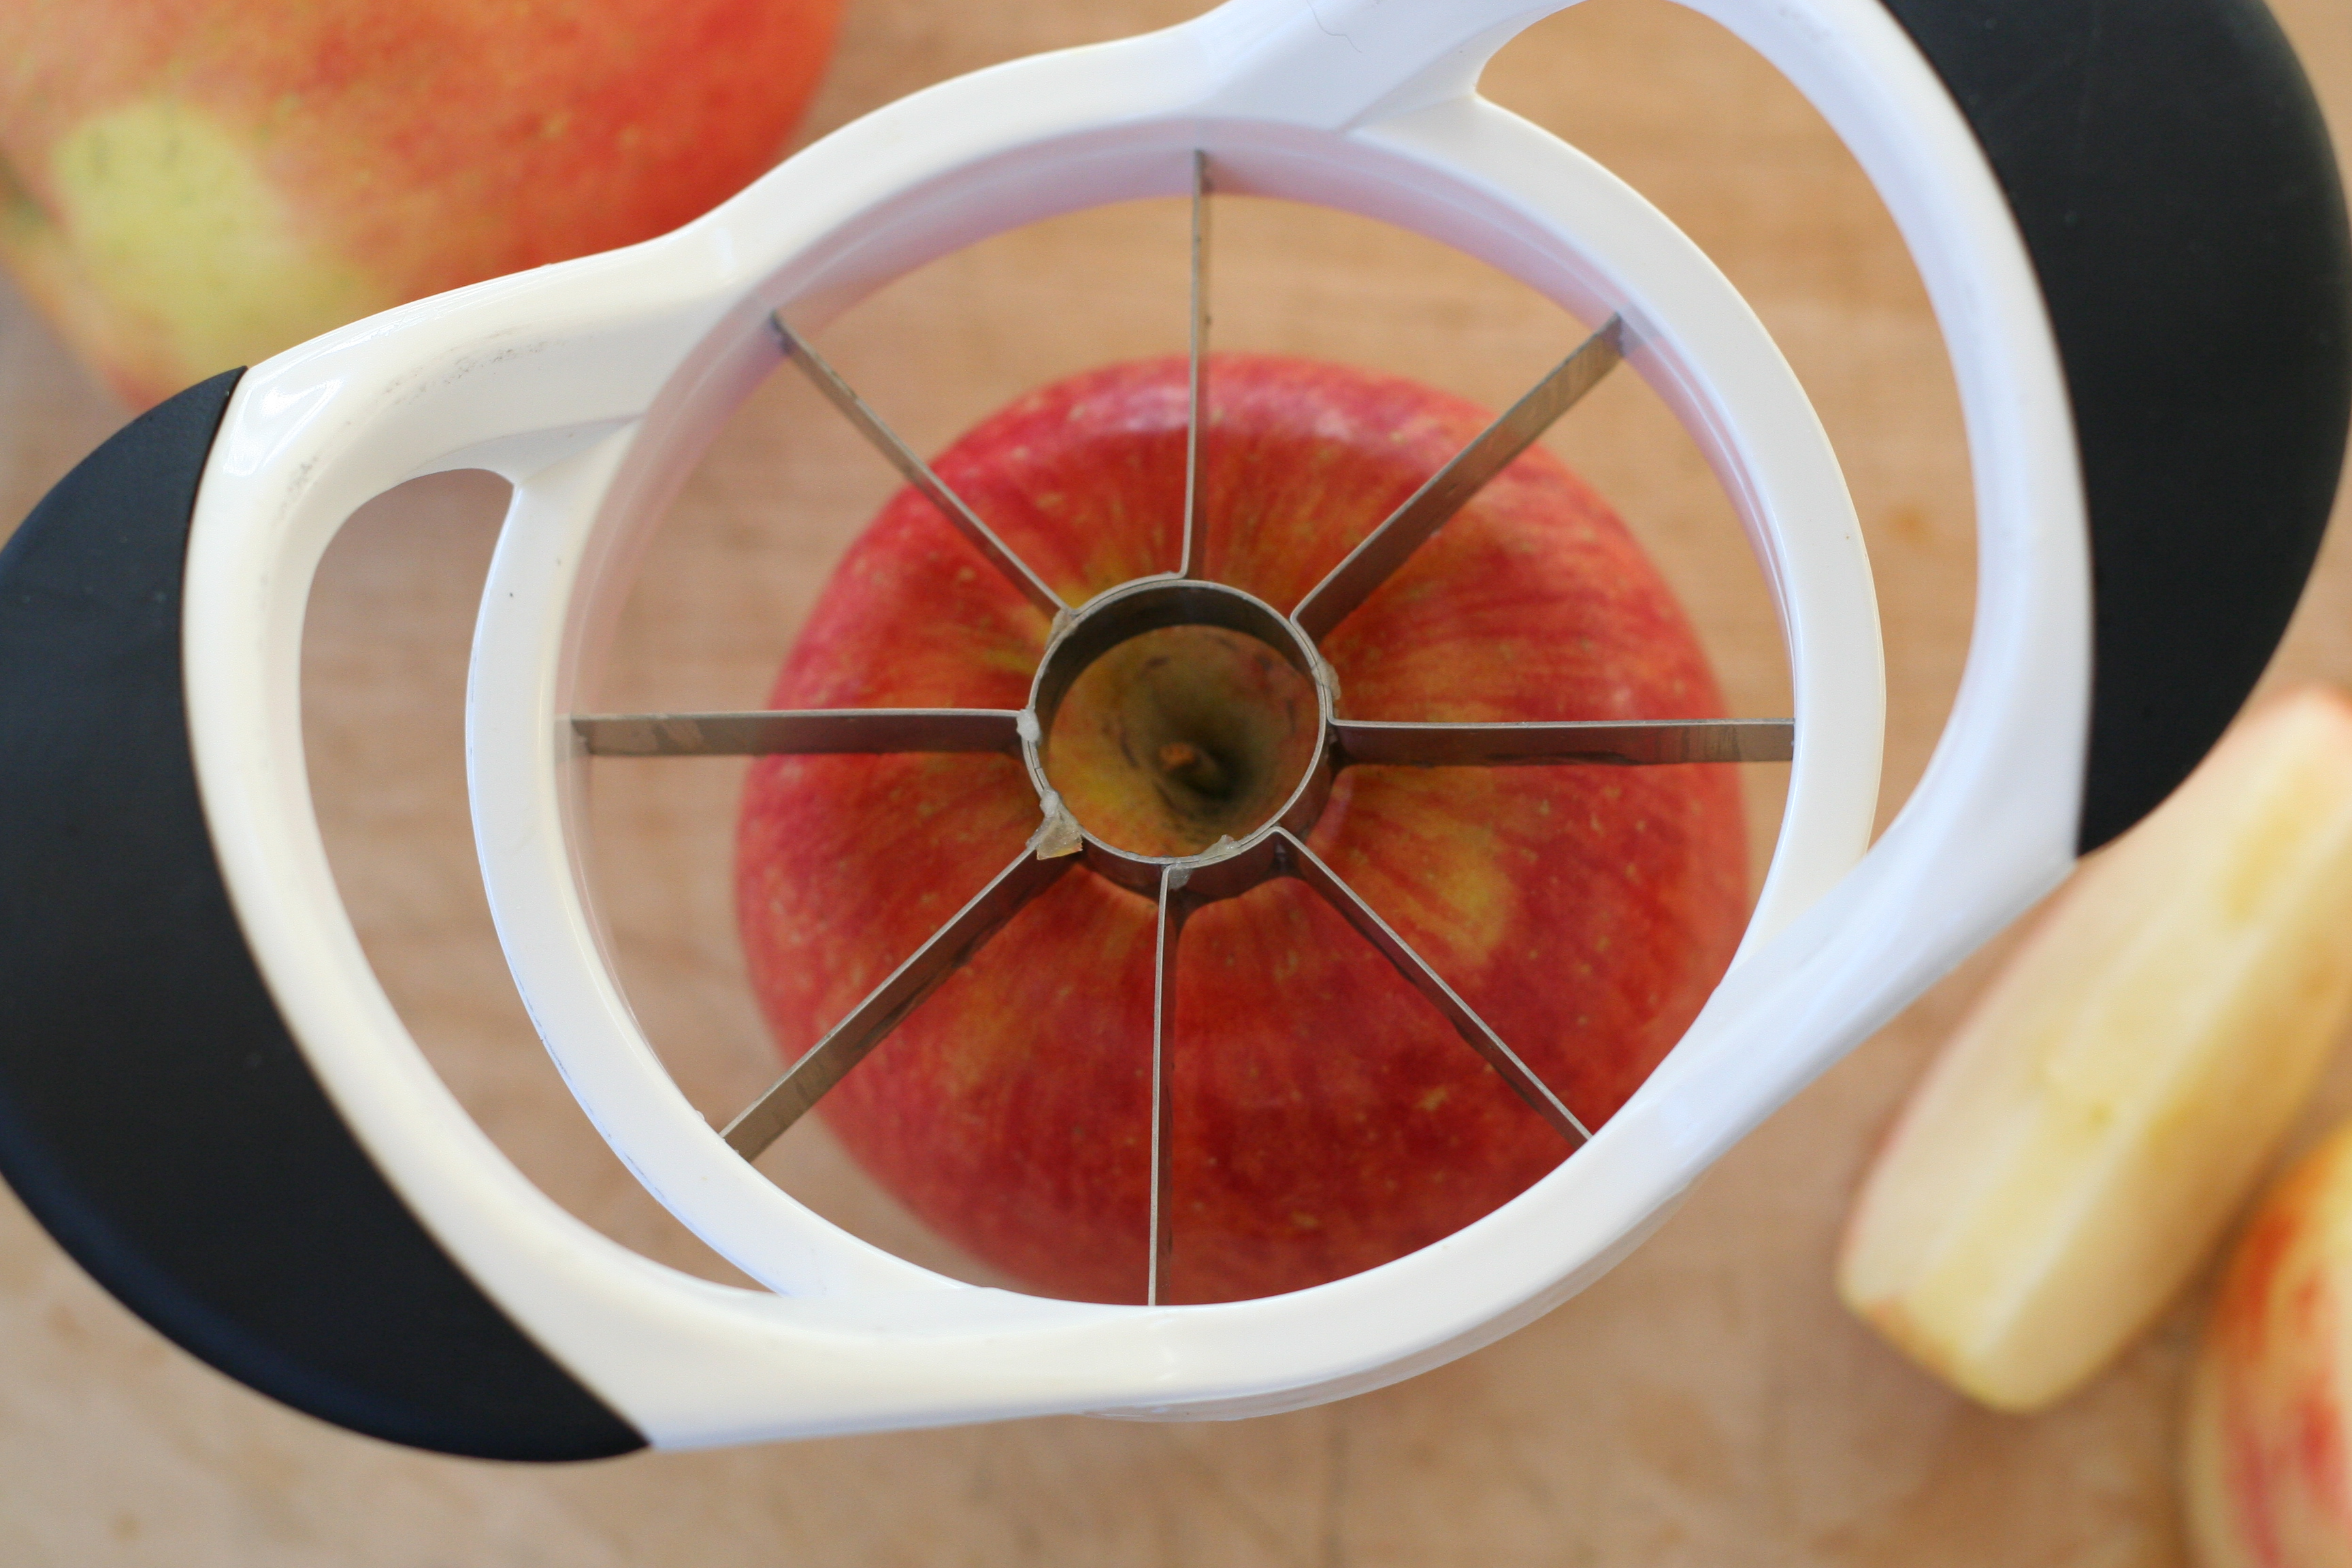 Cutting Apple with Slicer/Corer